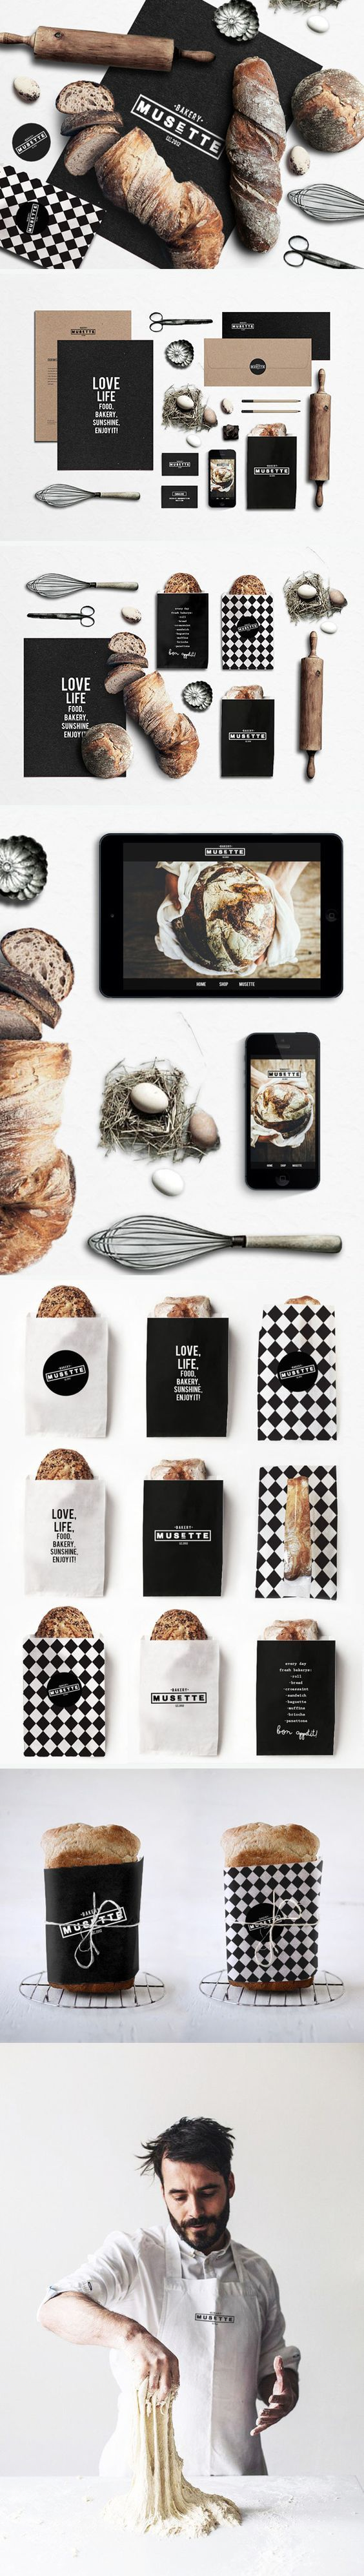 Musette bakery Identity, packaging, branding. Boy do I want some of this bread PD: